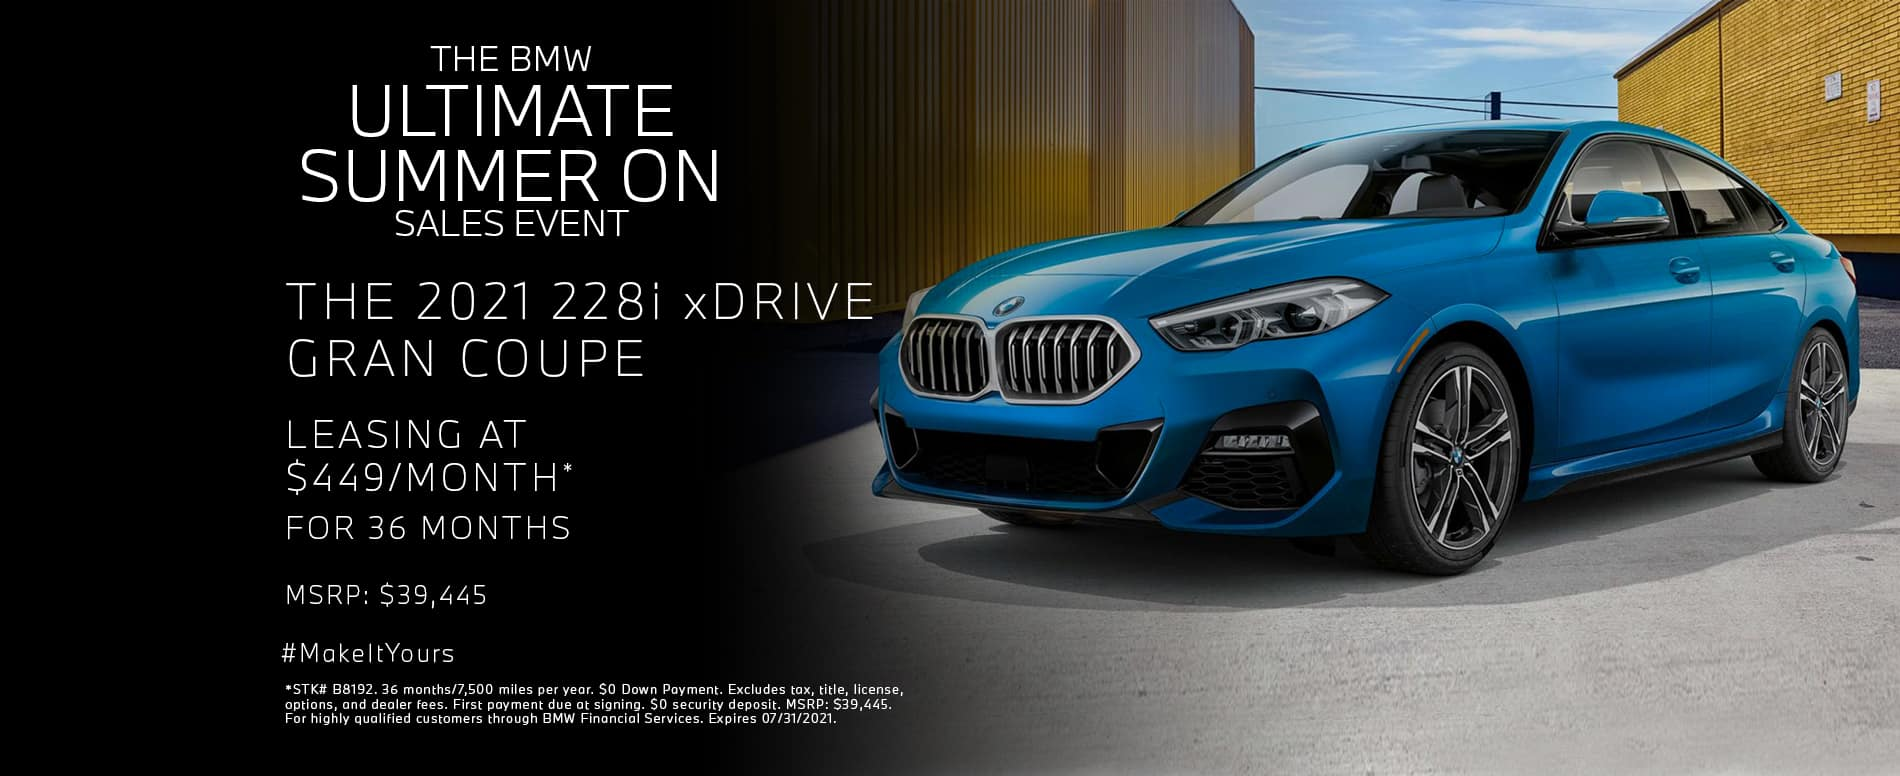 Lease a new 2021 228i xDRIVE GRAN COUPE for $449/mo